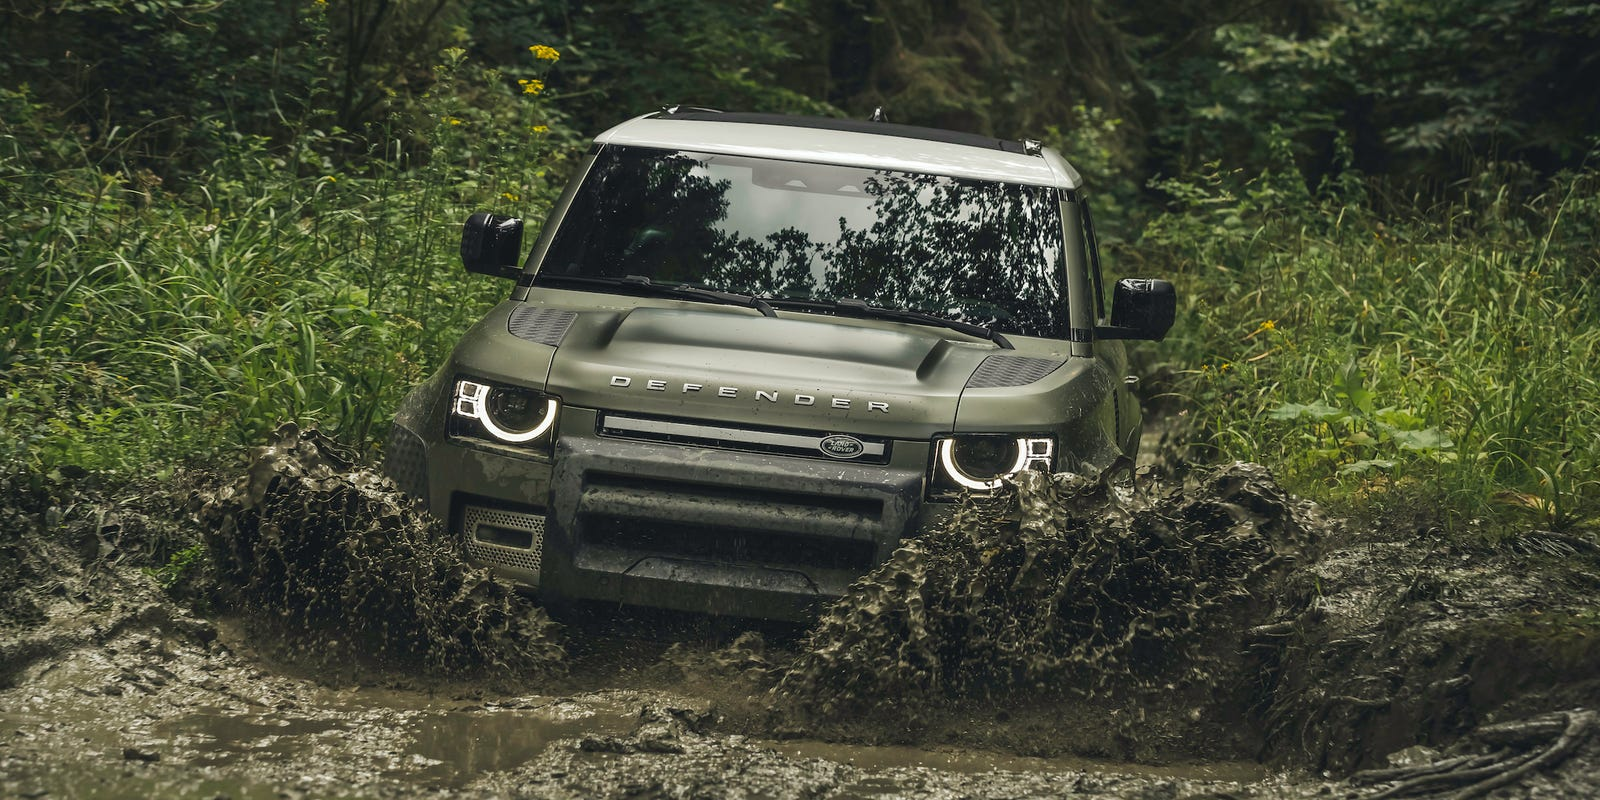 'Pack mules': Land Rover Defender's return at Los Angeles Auto Show thrills off-road enthusiasts